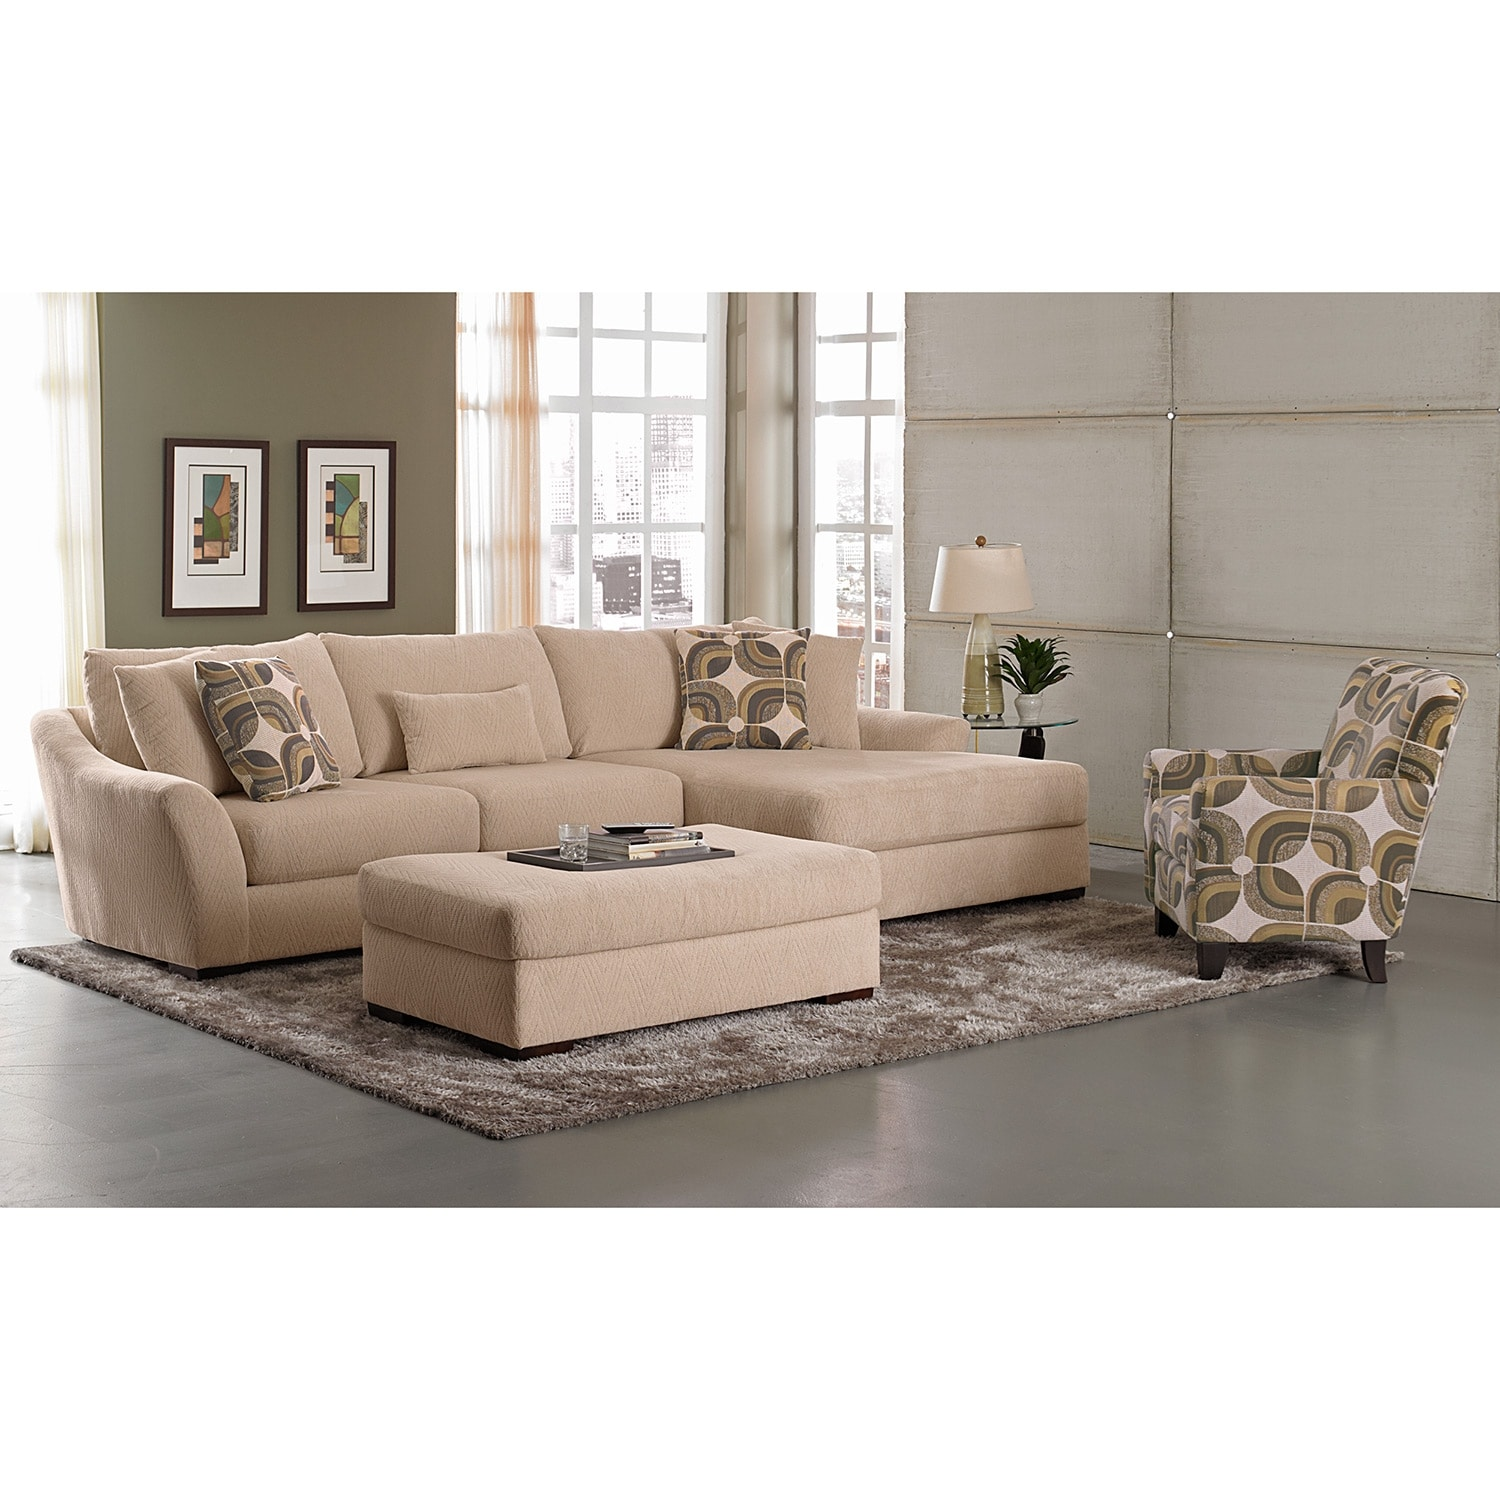 Oasis Ii Upholstery 2 Pc Sectional Reverse And Accent Chair Value City Furniture